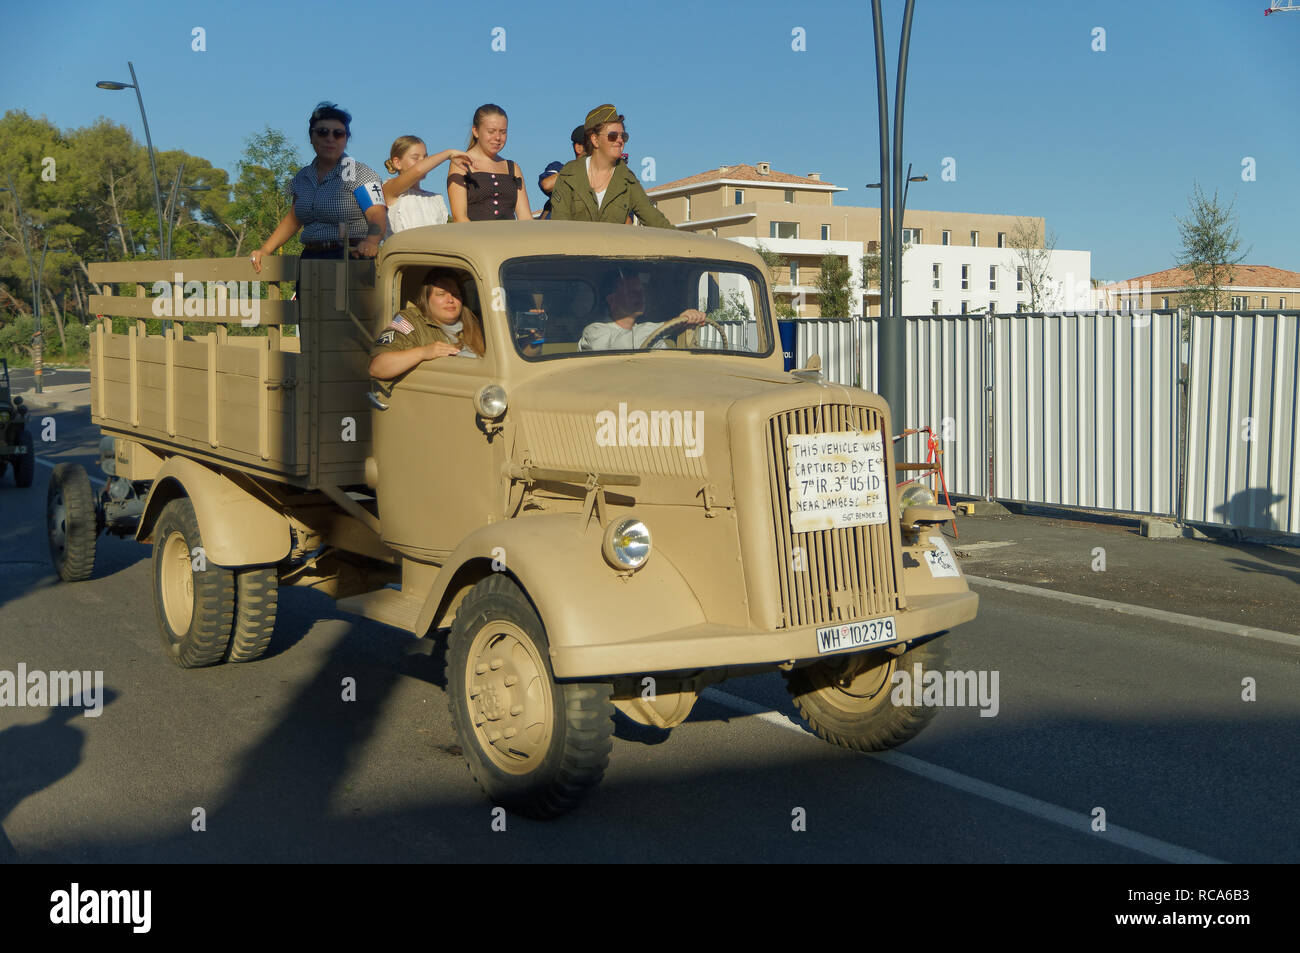 Opel Blitz High Resolution Stock Photography And Images Alamy